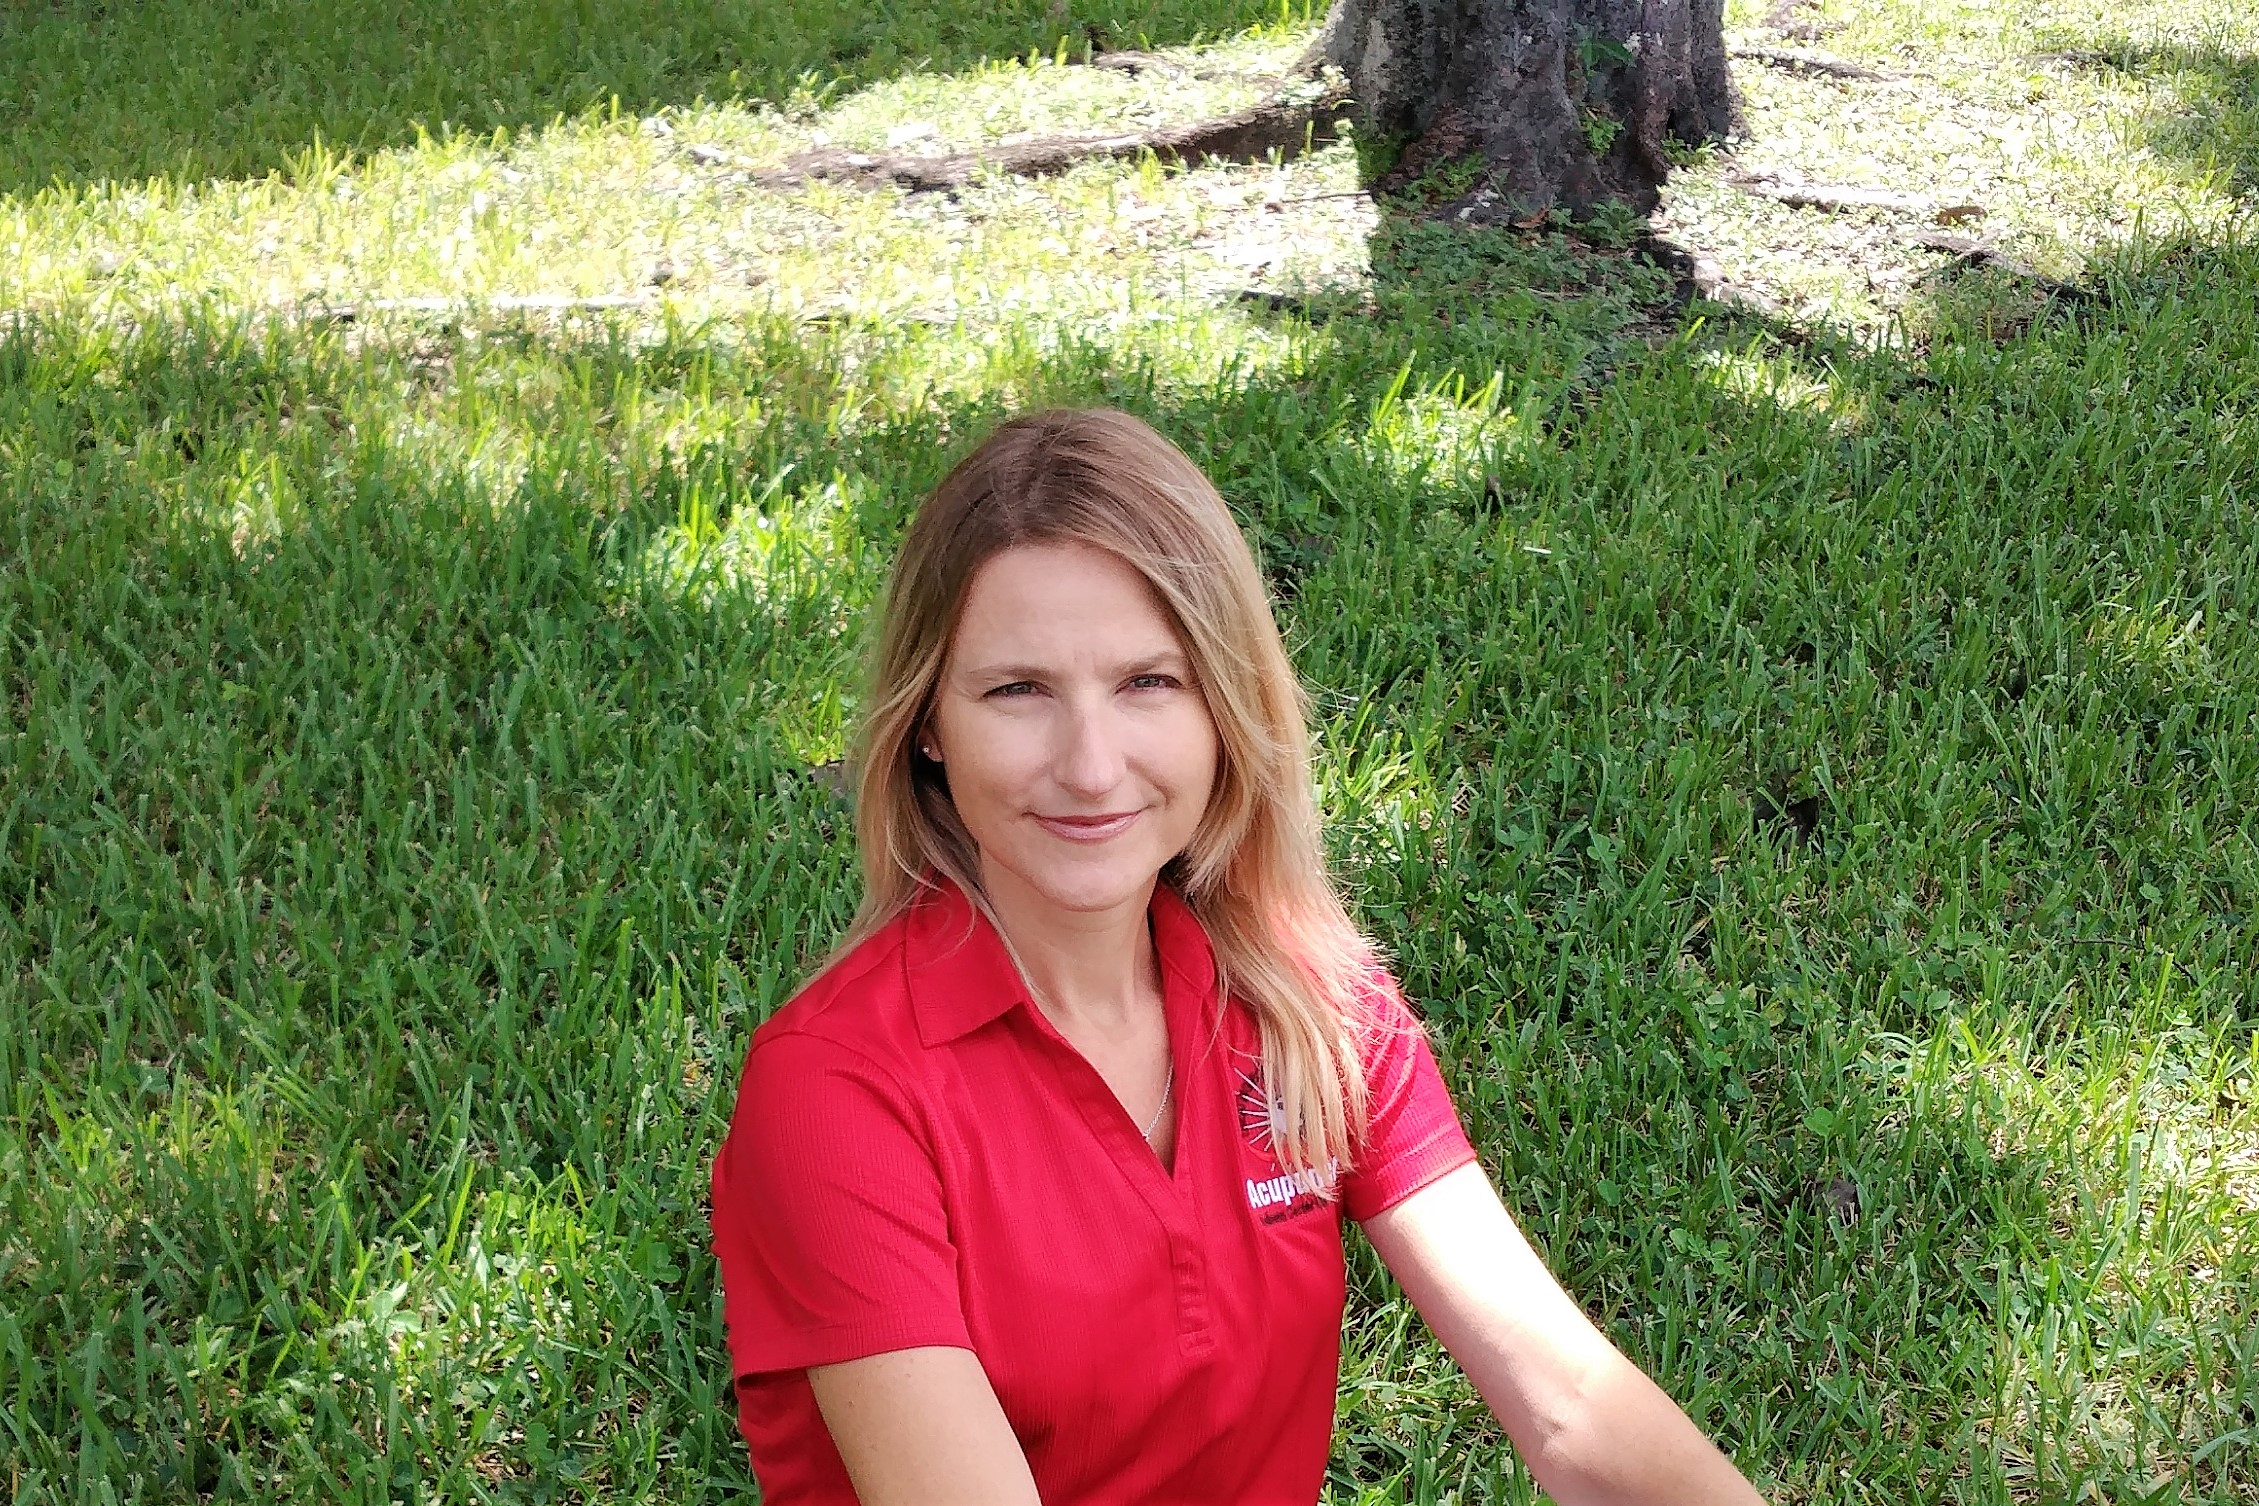 Meet Suzanne Swearengen of Acupuncture & Wellness Center of Florida